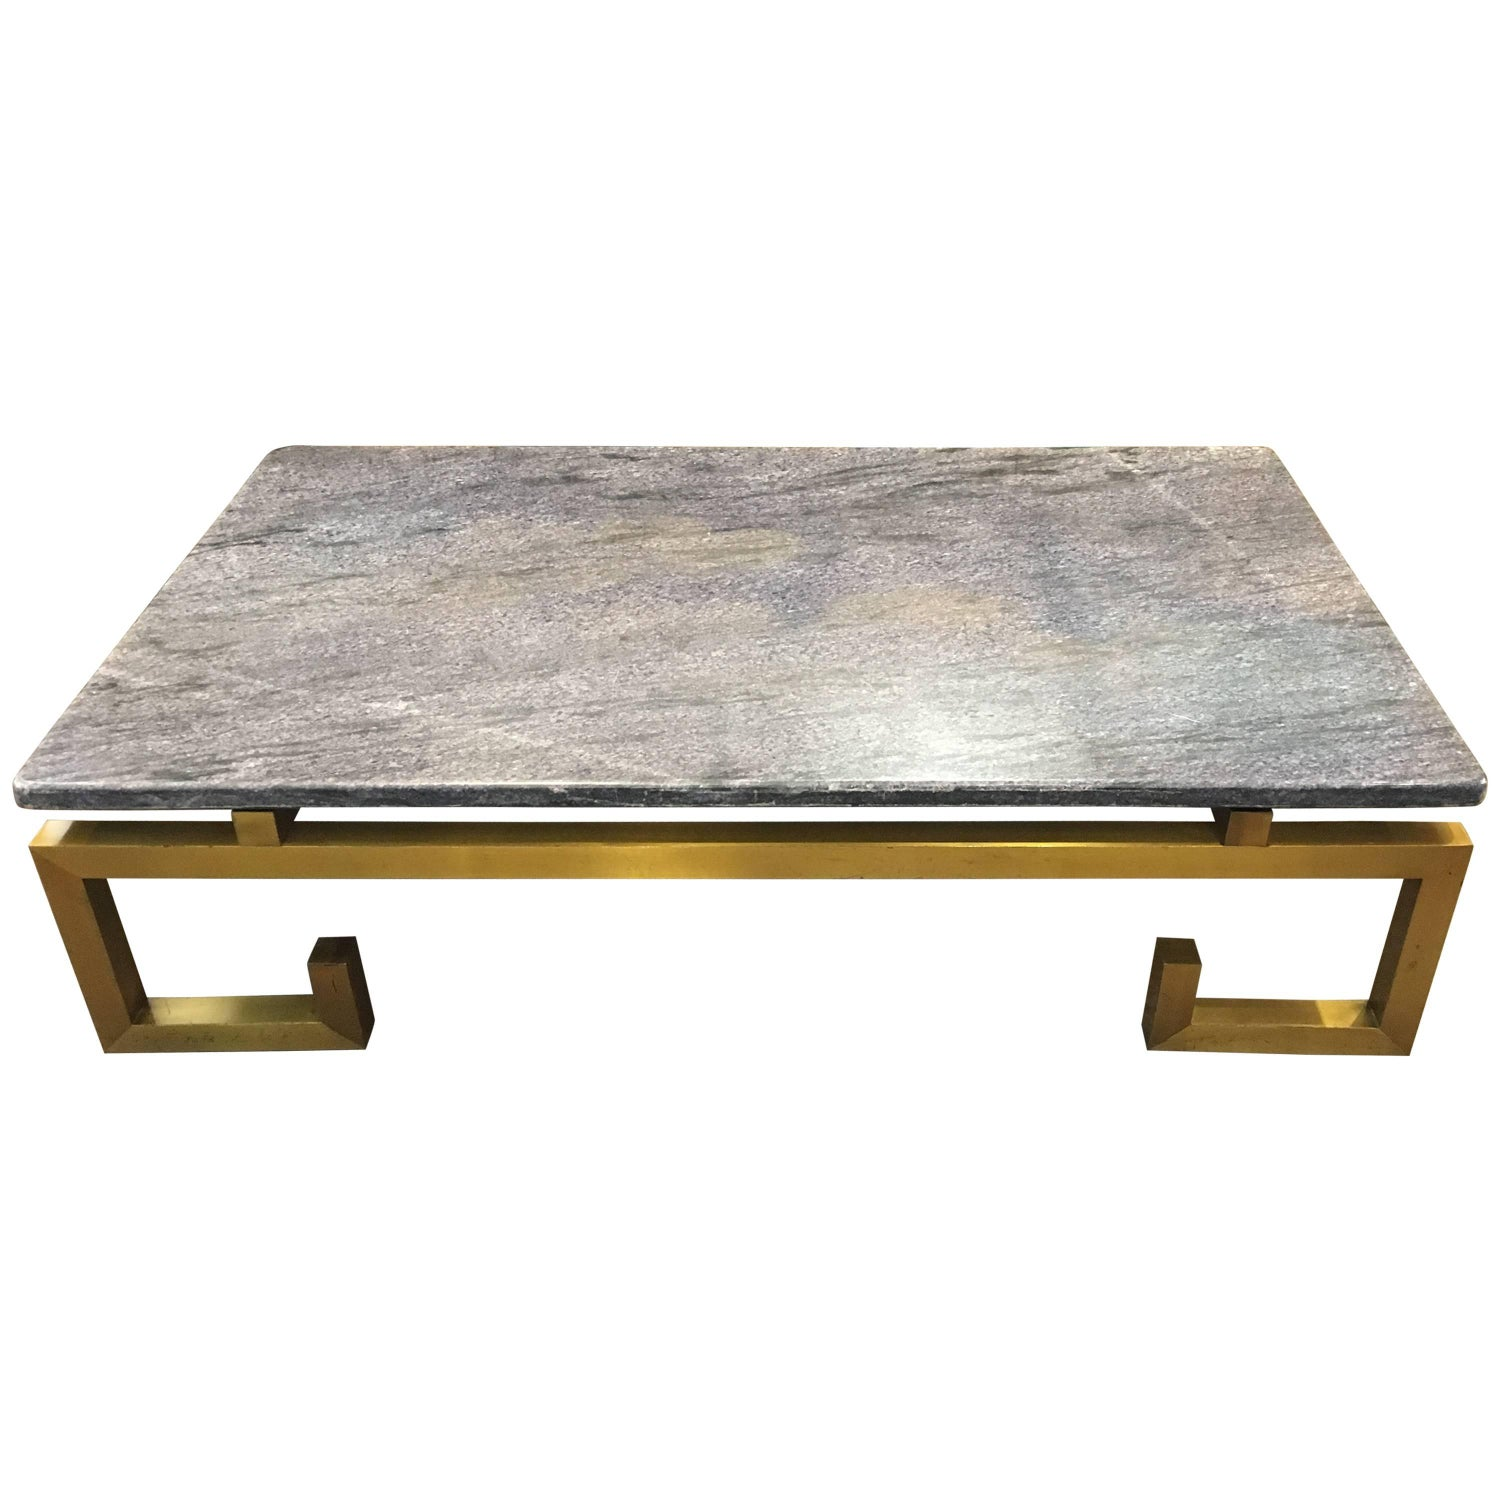 1970s Brass and Blue Marble Coffee Table For Sale at 1stdibs